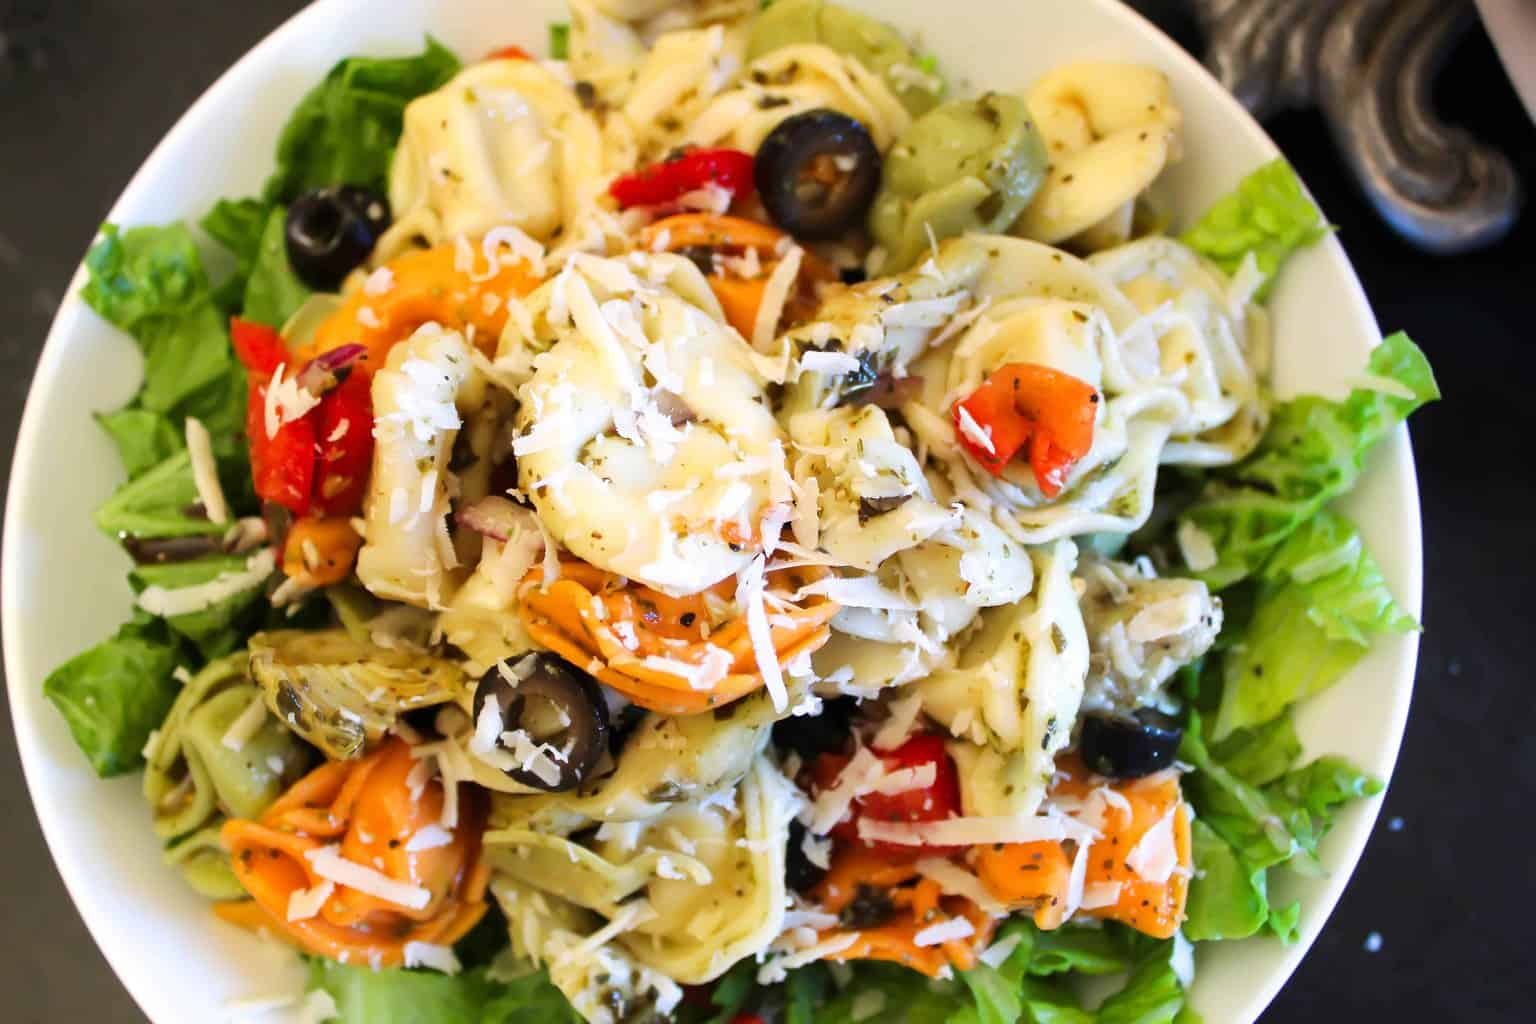 Tortellini Pasta Salad in a white bowl on a bed of green lettuce